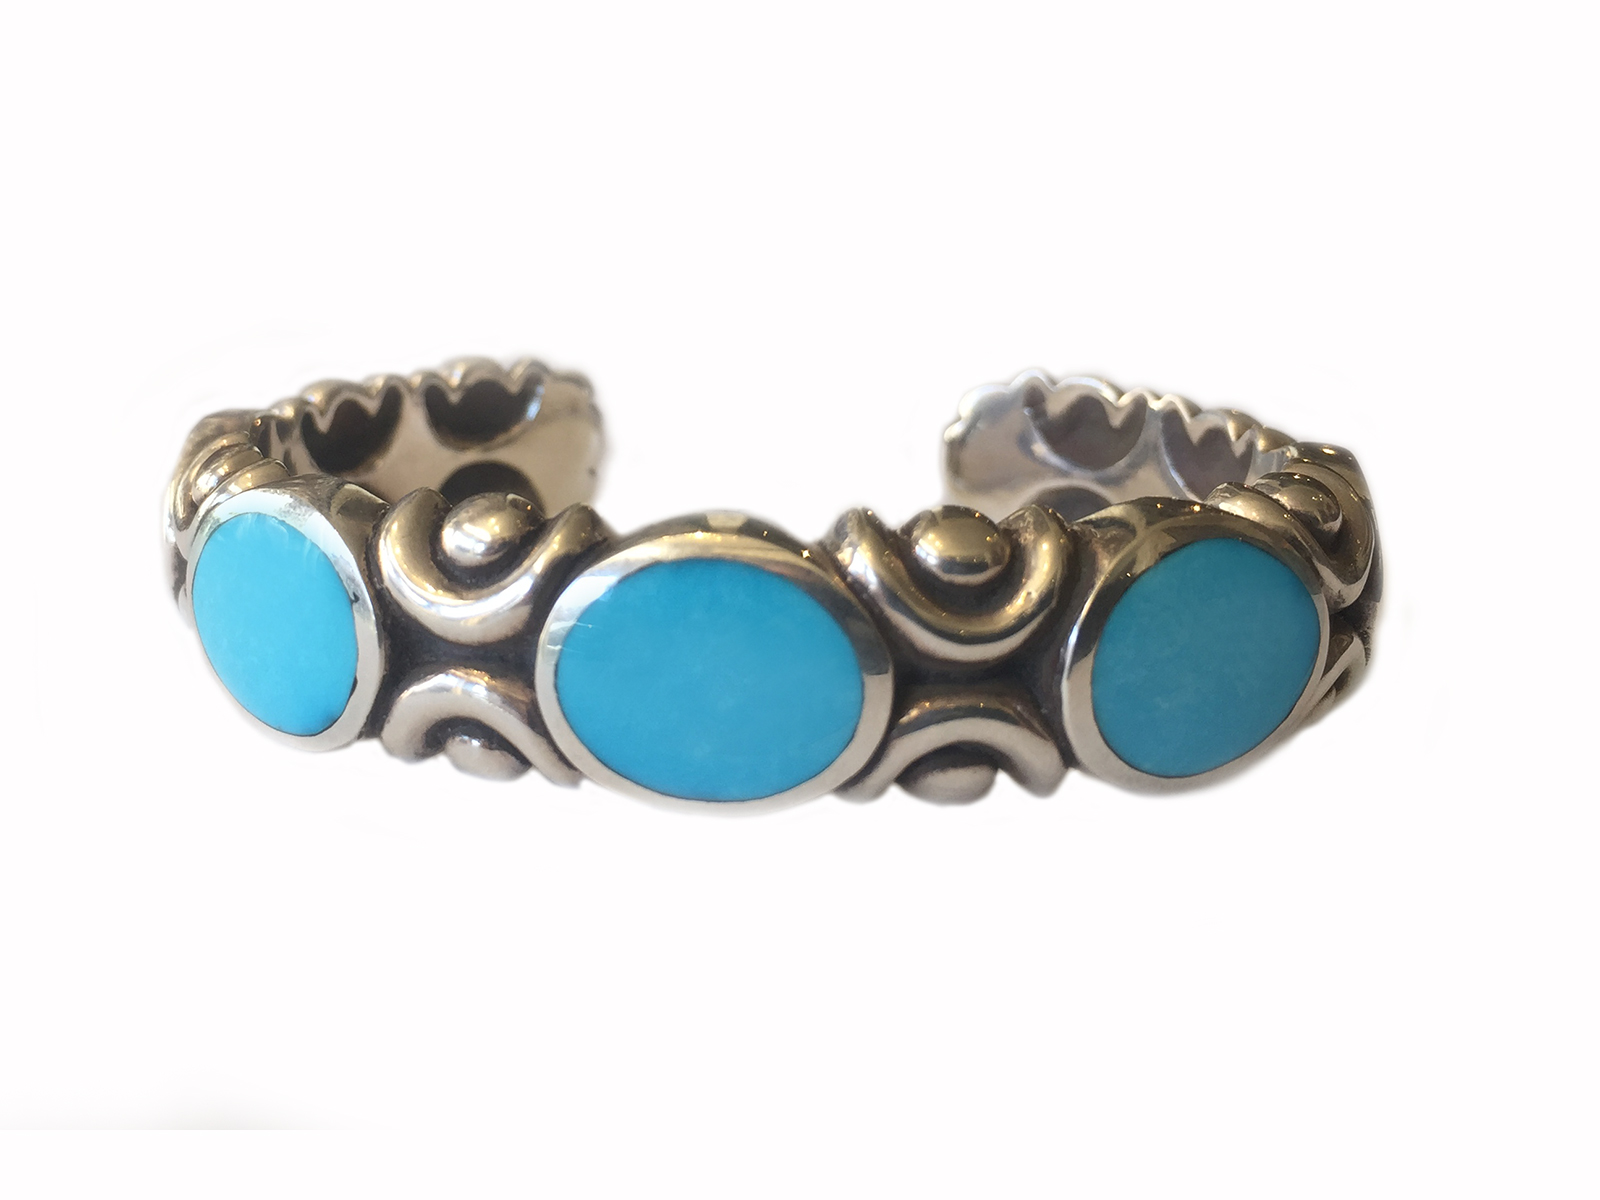 Natural Sleeping Beauty Turquoise Cuff